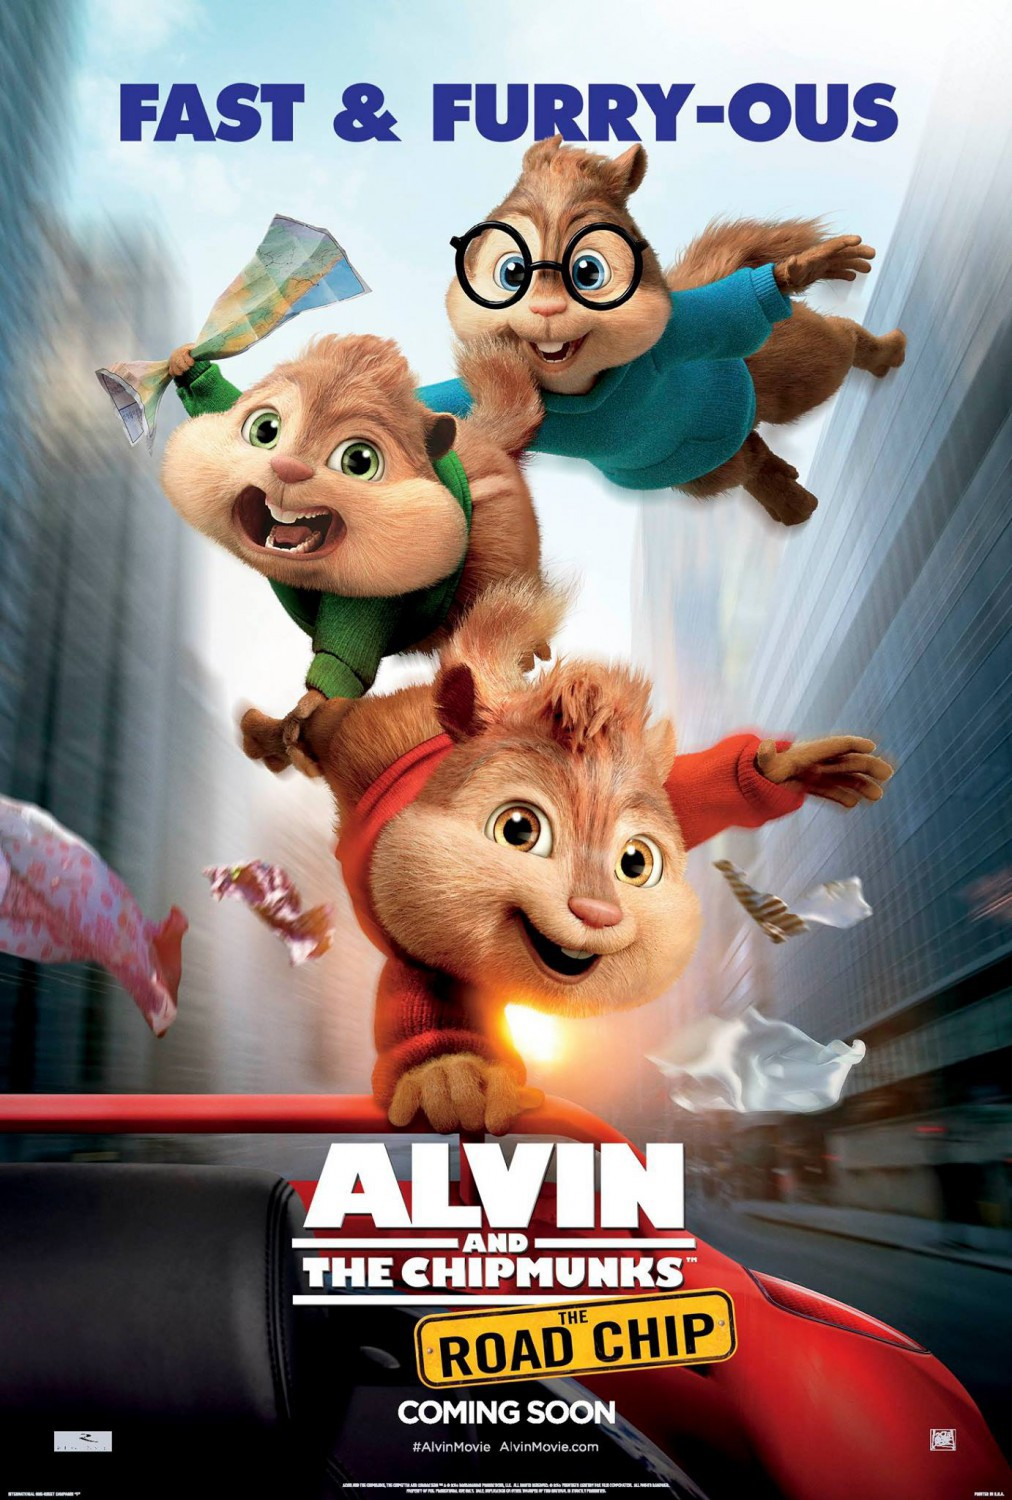 alvin and the chipmunks 1 full movie in hindi dubbed watch online